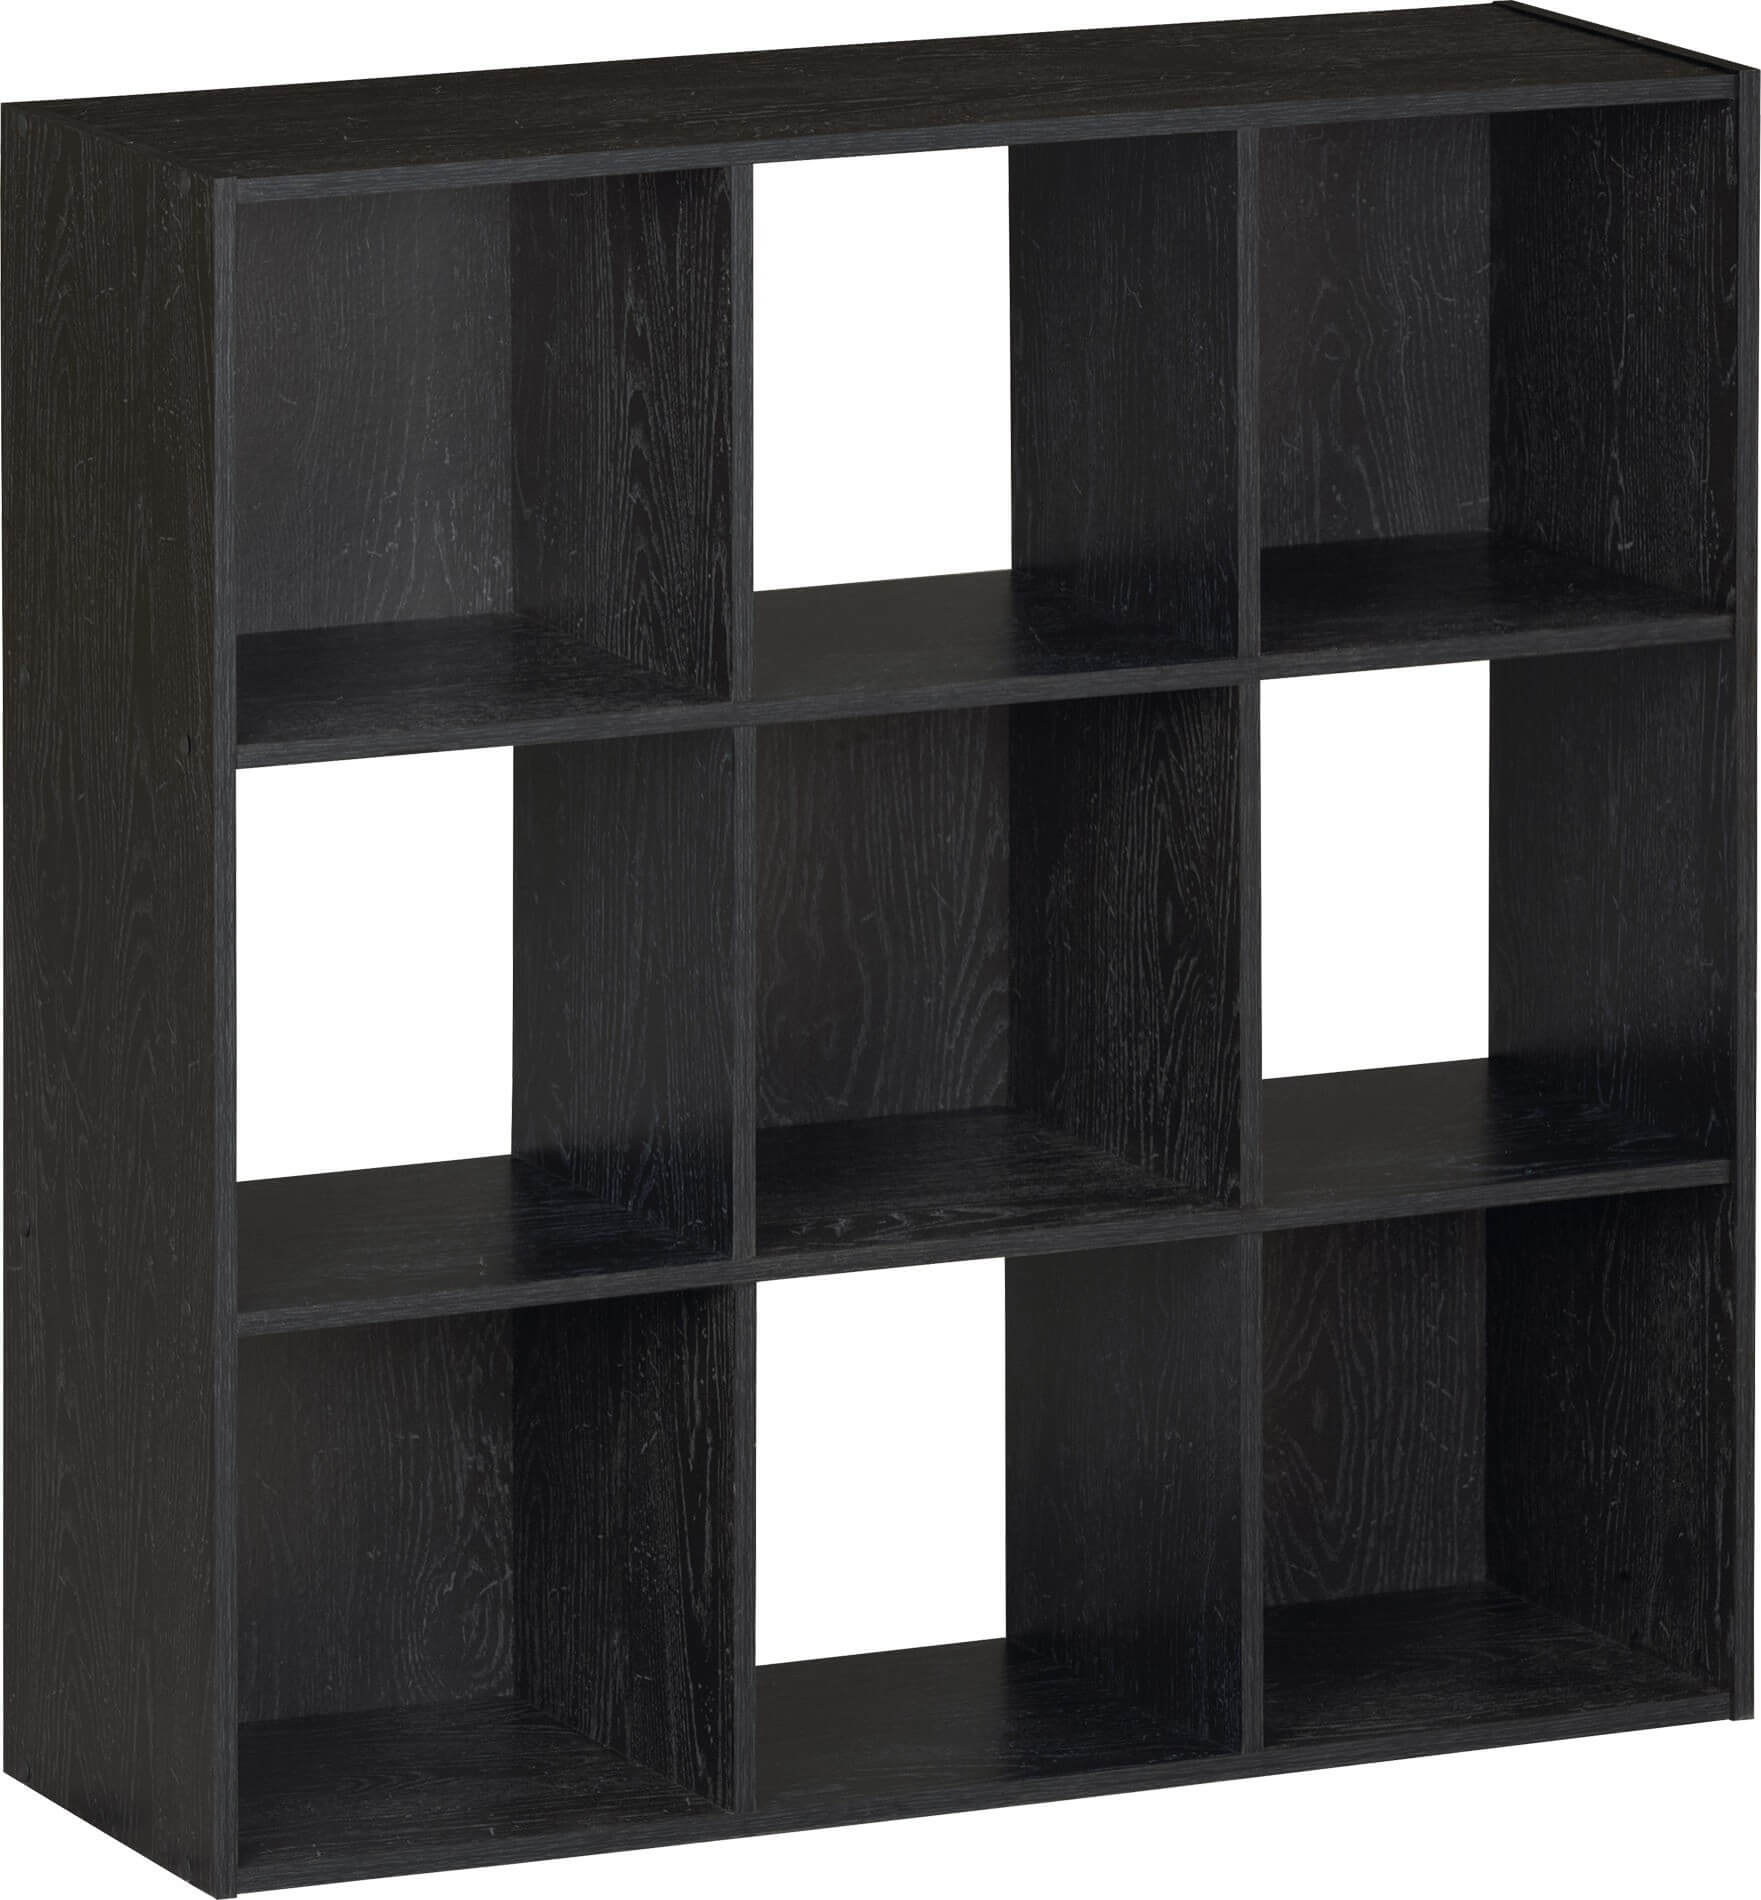 This is a very standard checkered style 9-cube shelf in black.